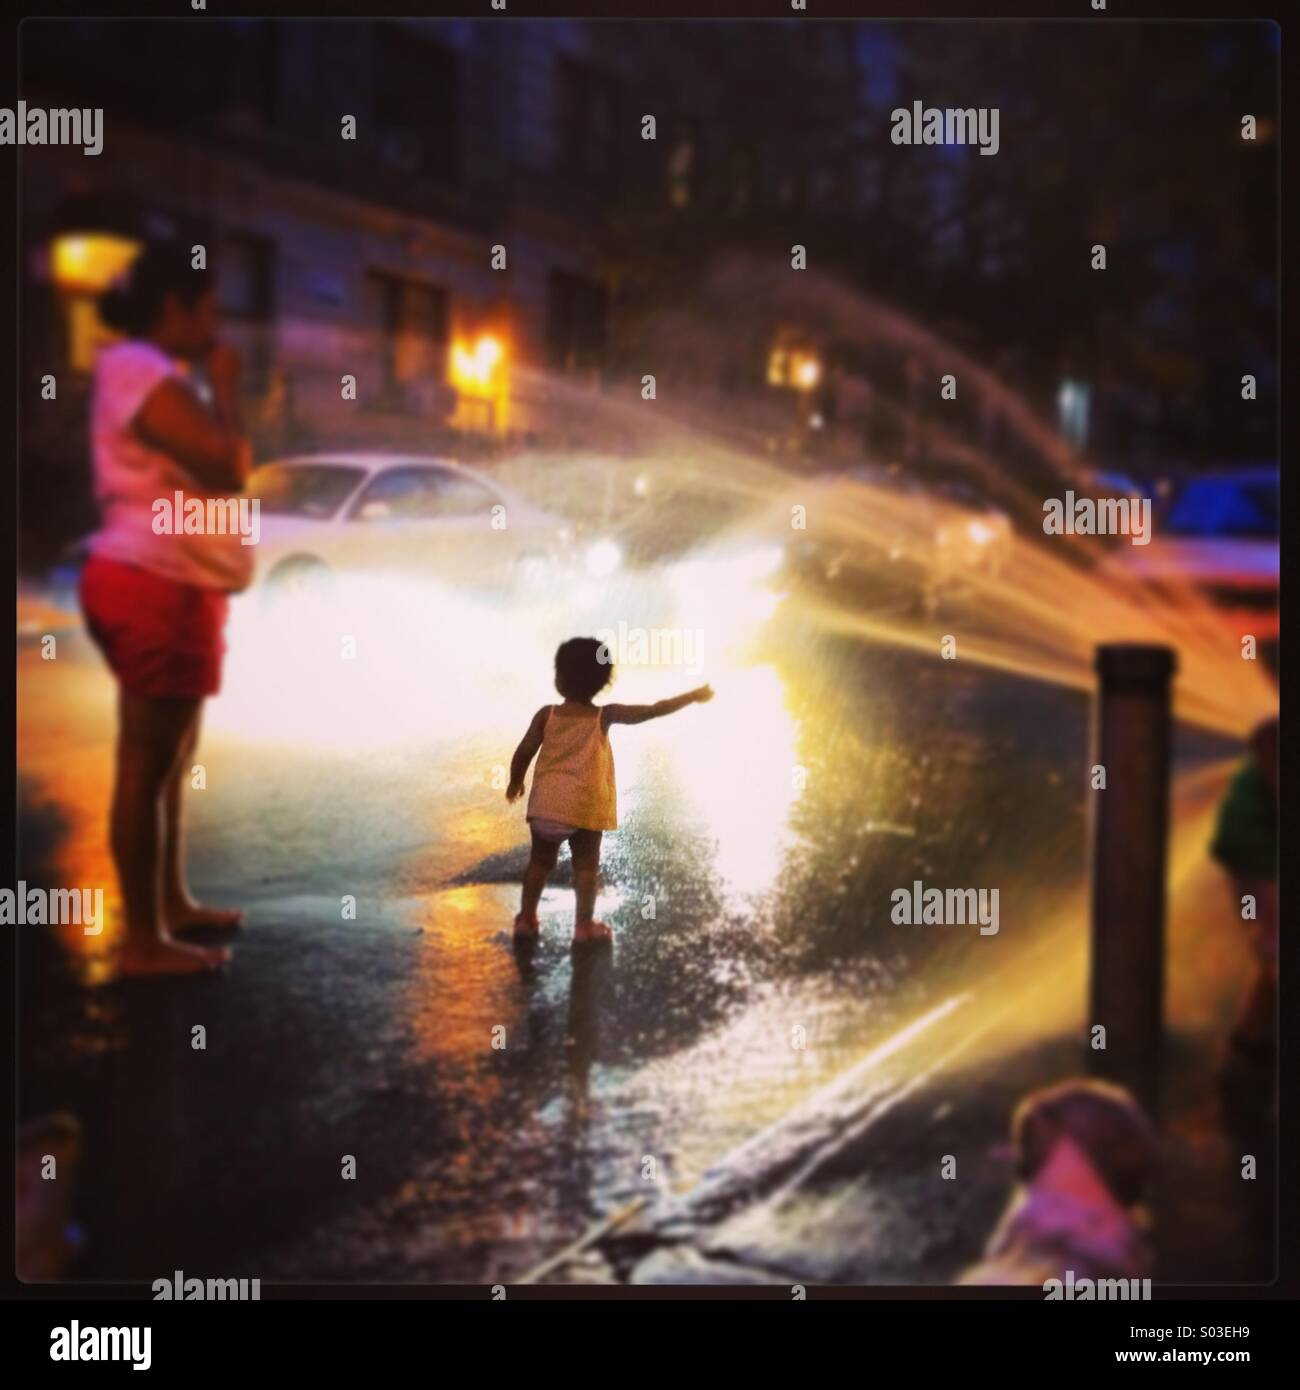 Young child playing in fire hydrant spray - Stock Image